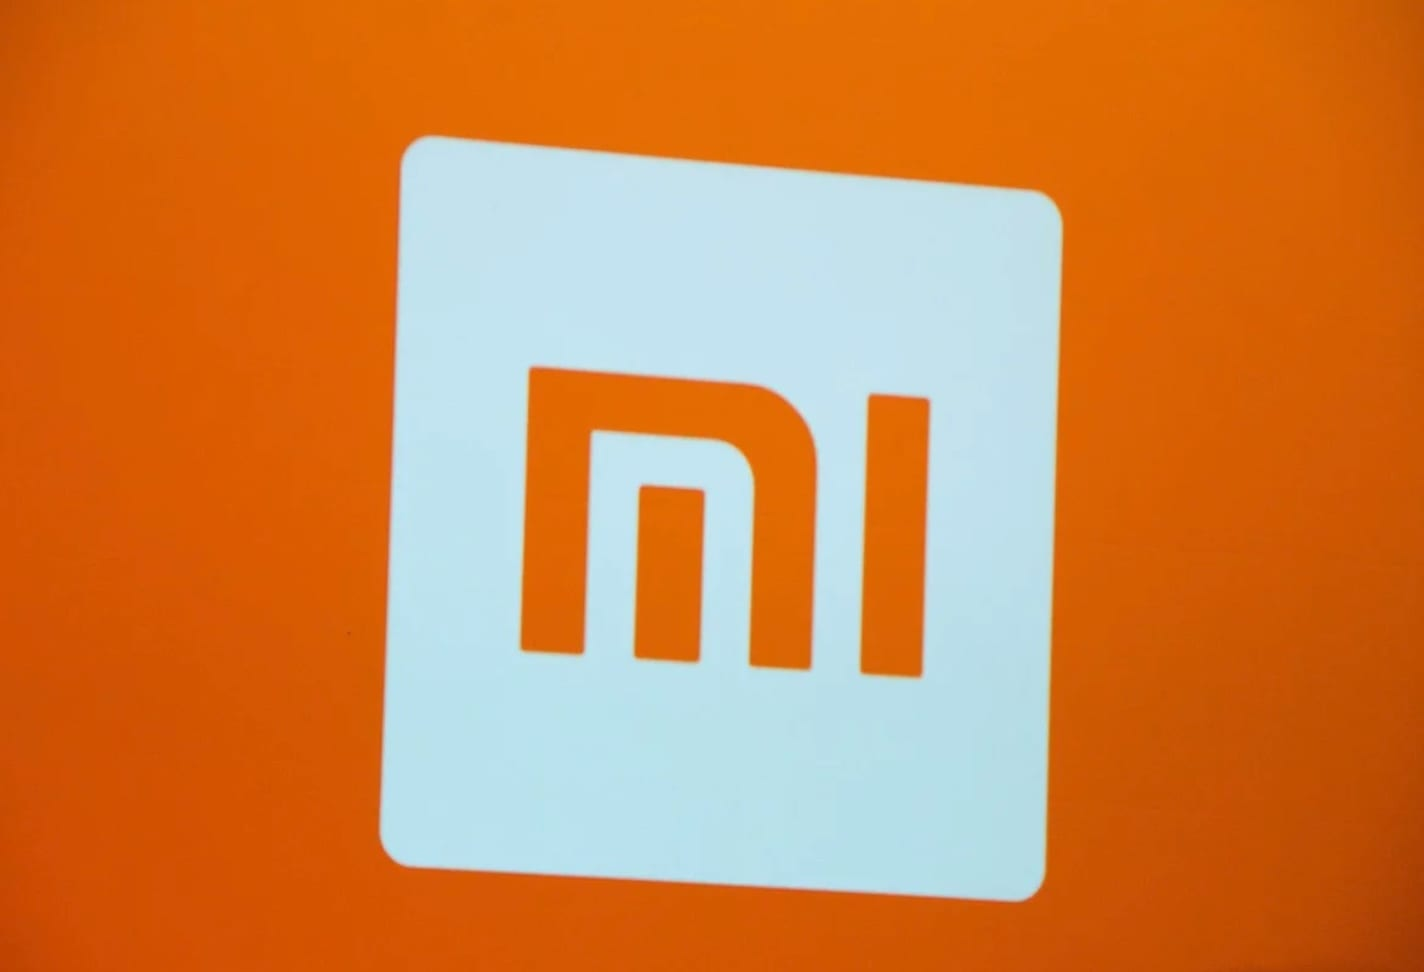 Xiaomi added to military blacklist by Trump administration